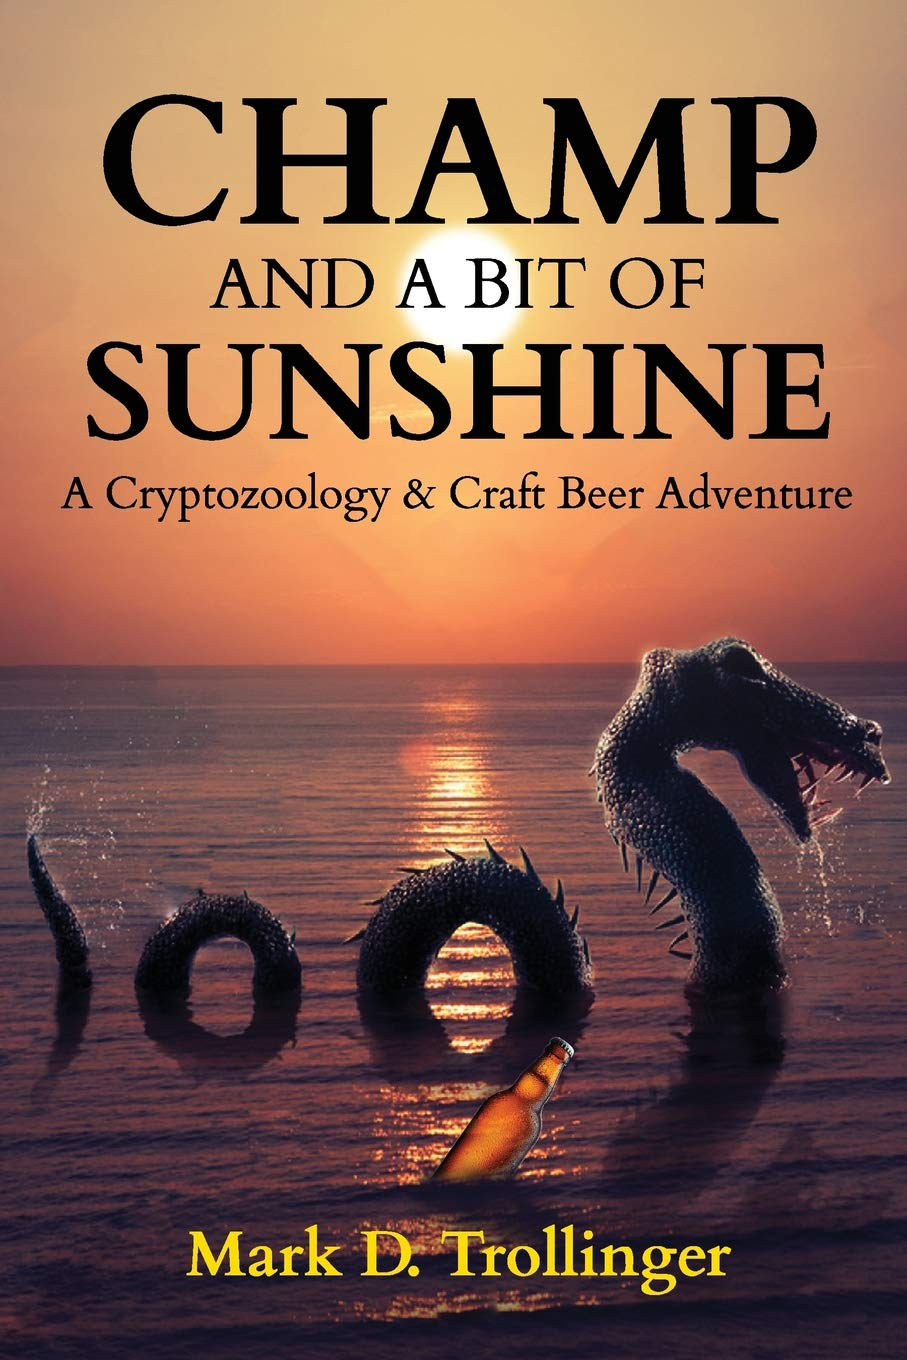 Champ and a Bit of Sunshine: A Cryptozoology & Craft Beer Adventure (Texans Investigating Mysterious Entities (TIME)) (Volume 2) ebook